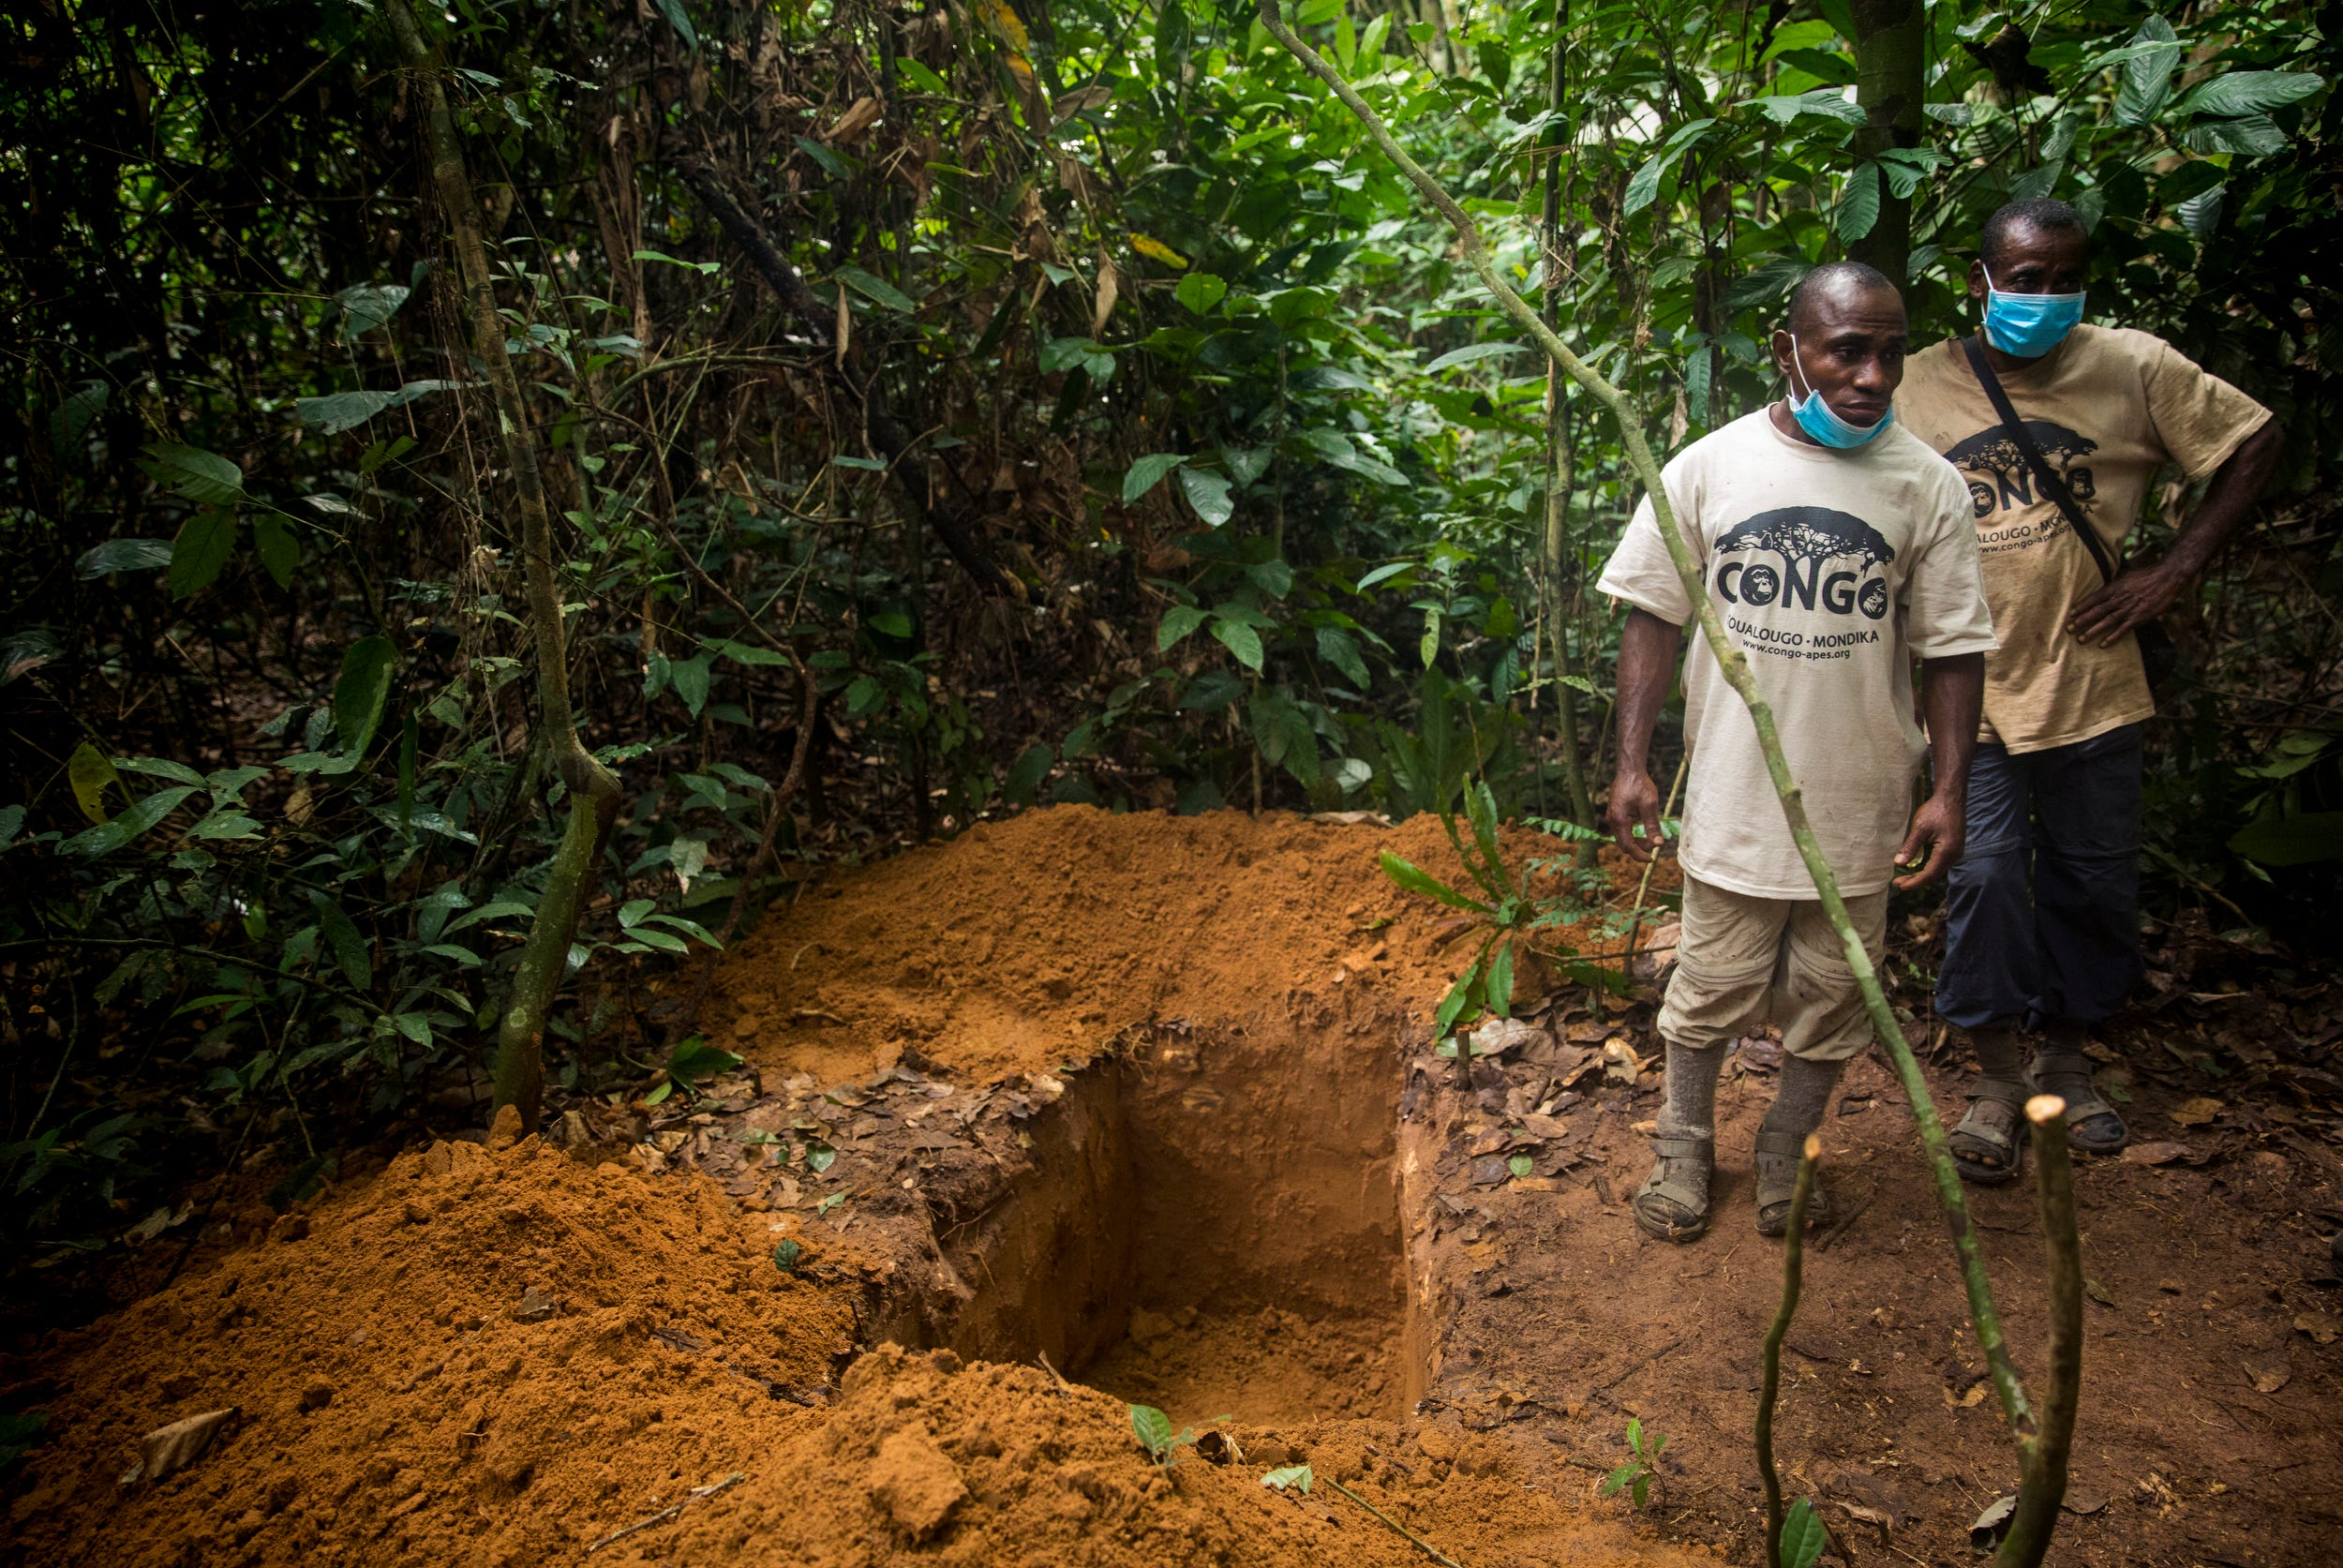 Etecko Lambert and Rene Ngoto stand by the grave they just dug for Etecko, a male gorilla, who died that morning after three weeks of losing weight and growing more and more lethargic. Etecko was named after the tracker standing next to his grave.